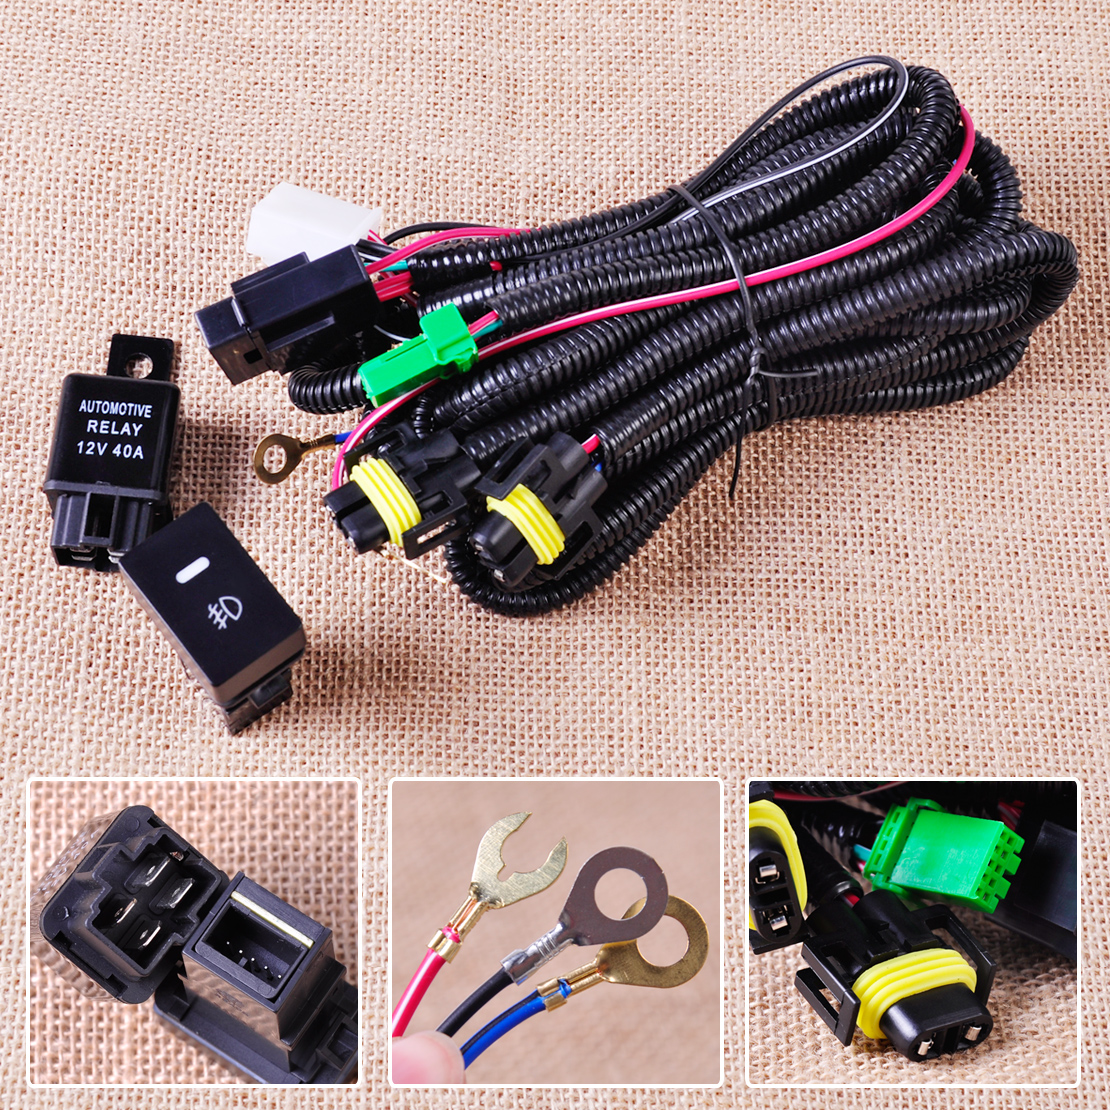 New Wiring Harness Socket Switch For H11 Fog Light Lamp Ford Focus Led Indicator Acura Nissan 728360607010 Ebay